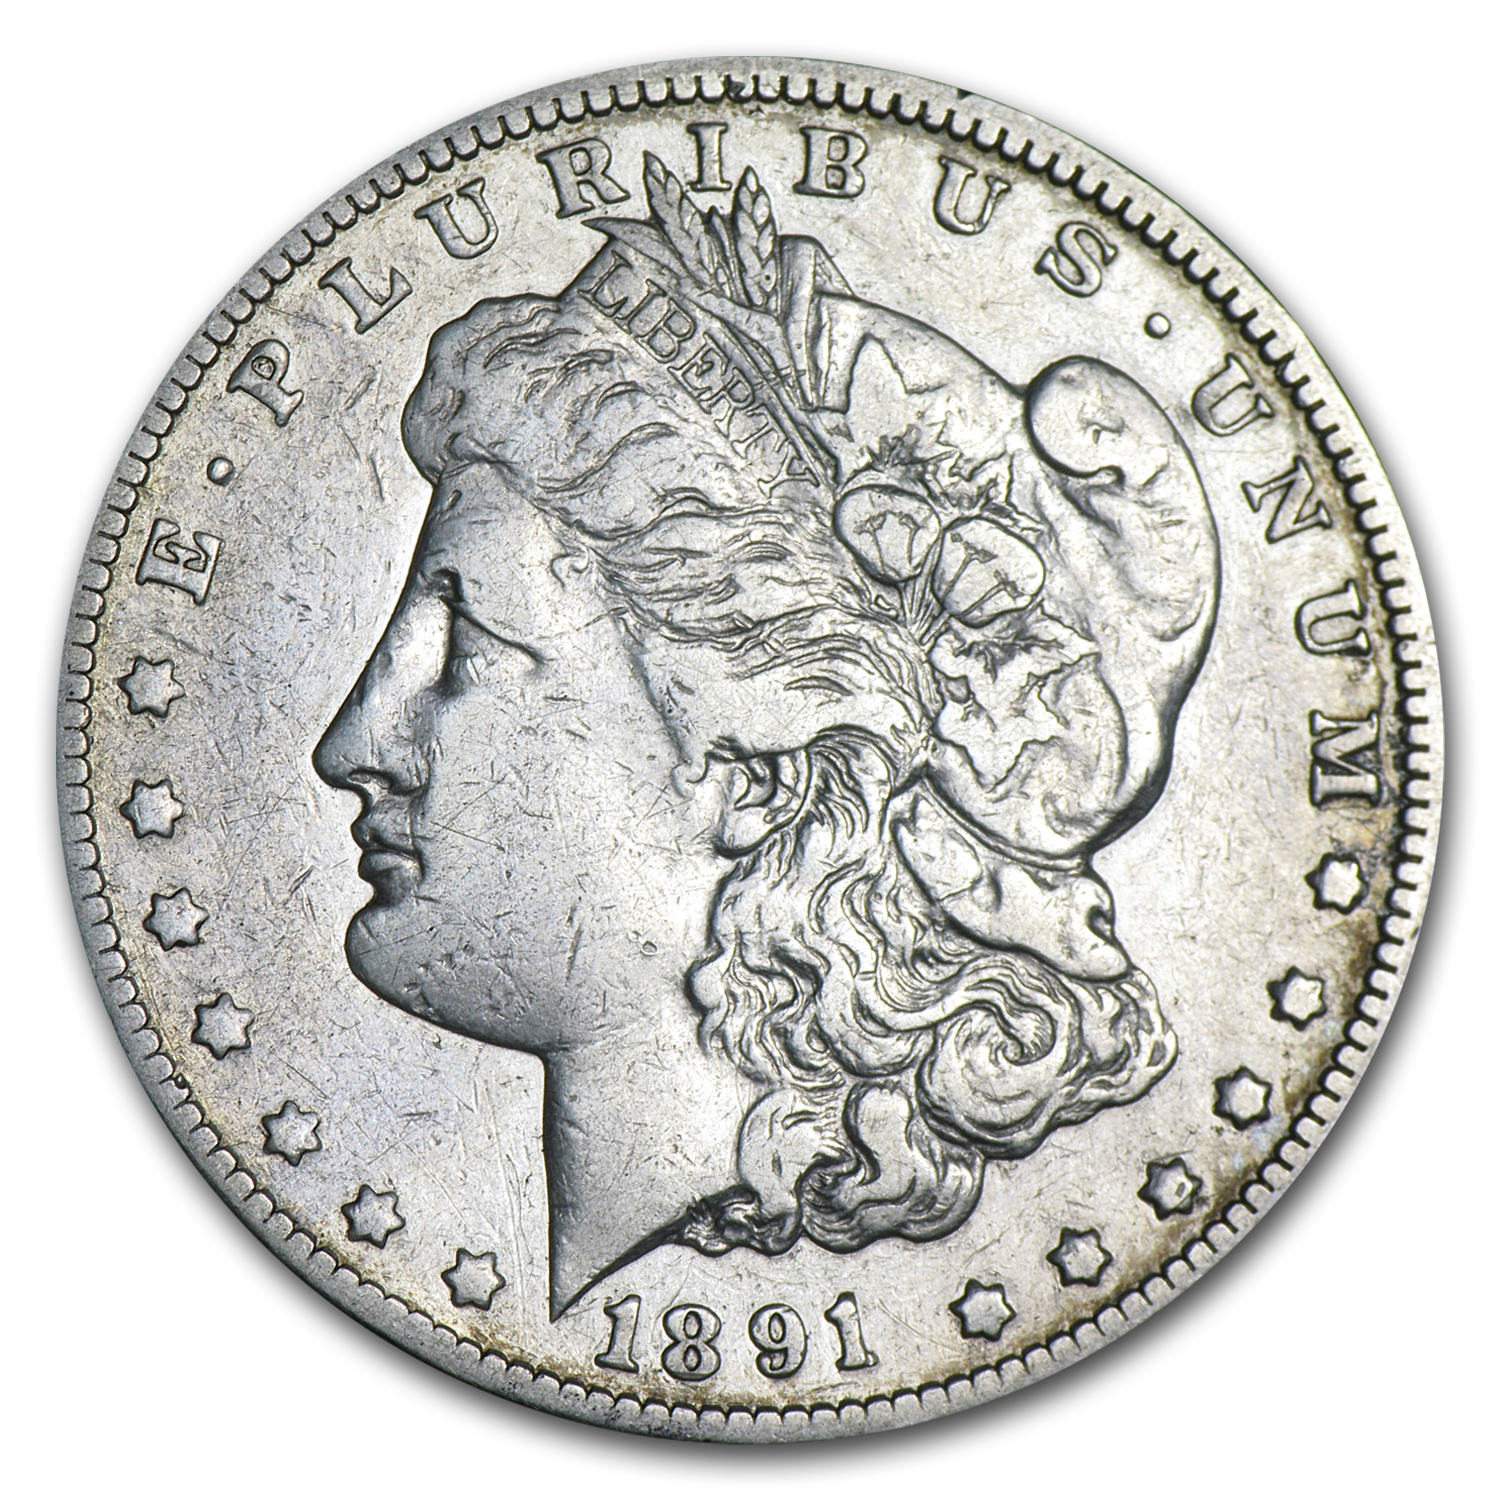 1891-CC Morgan Dollar - Very Fine Details - Cleaned